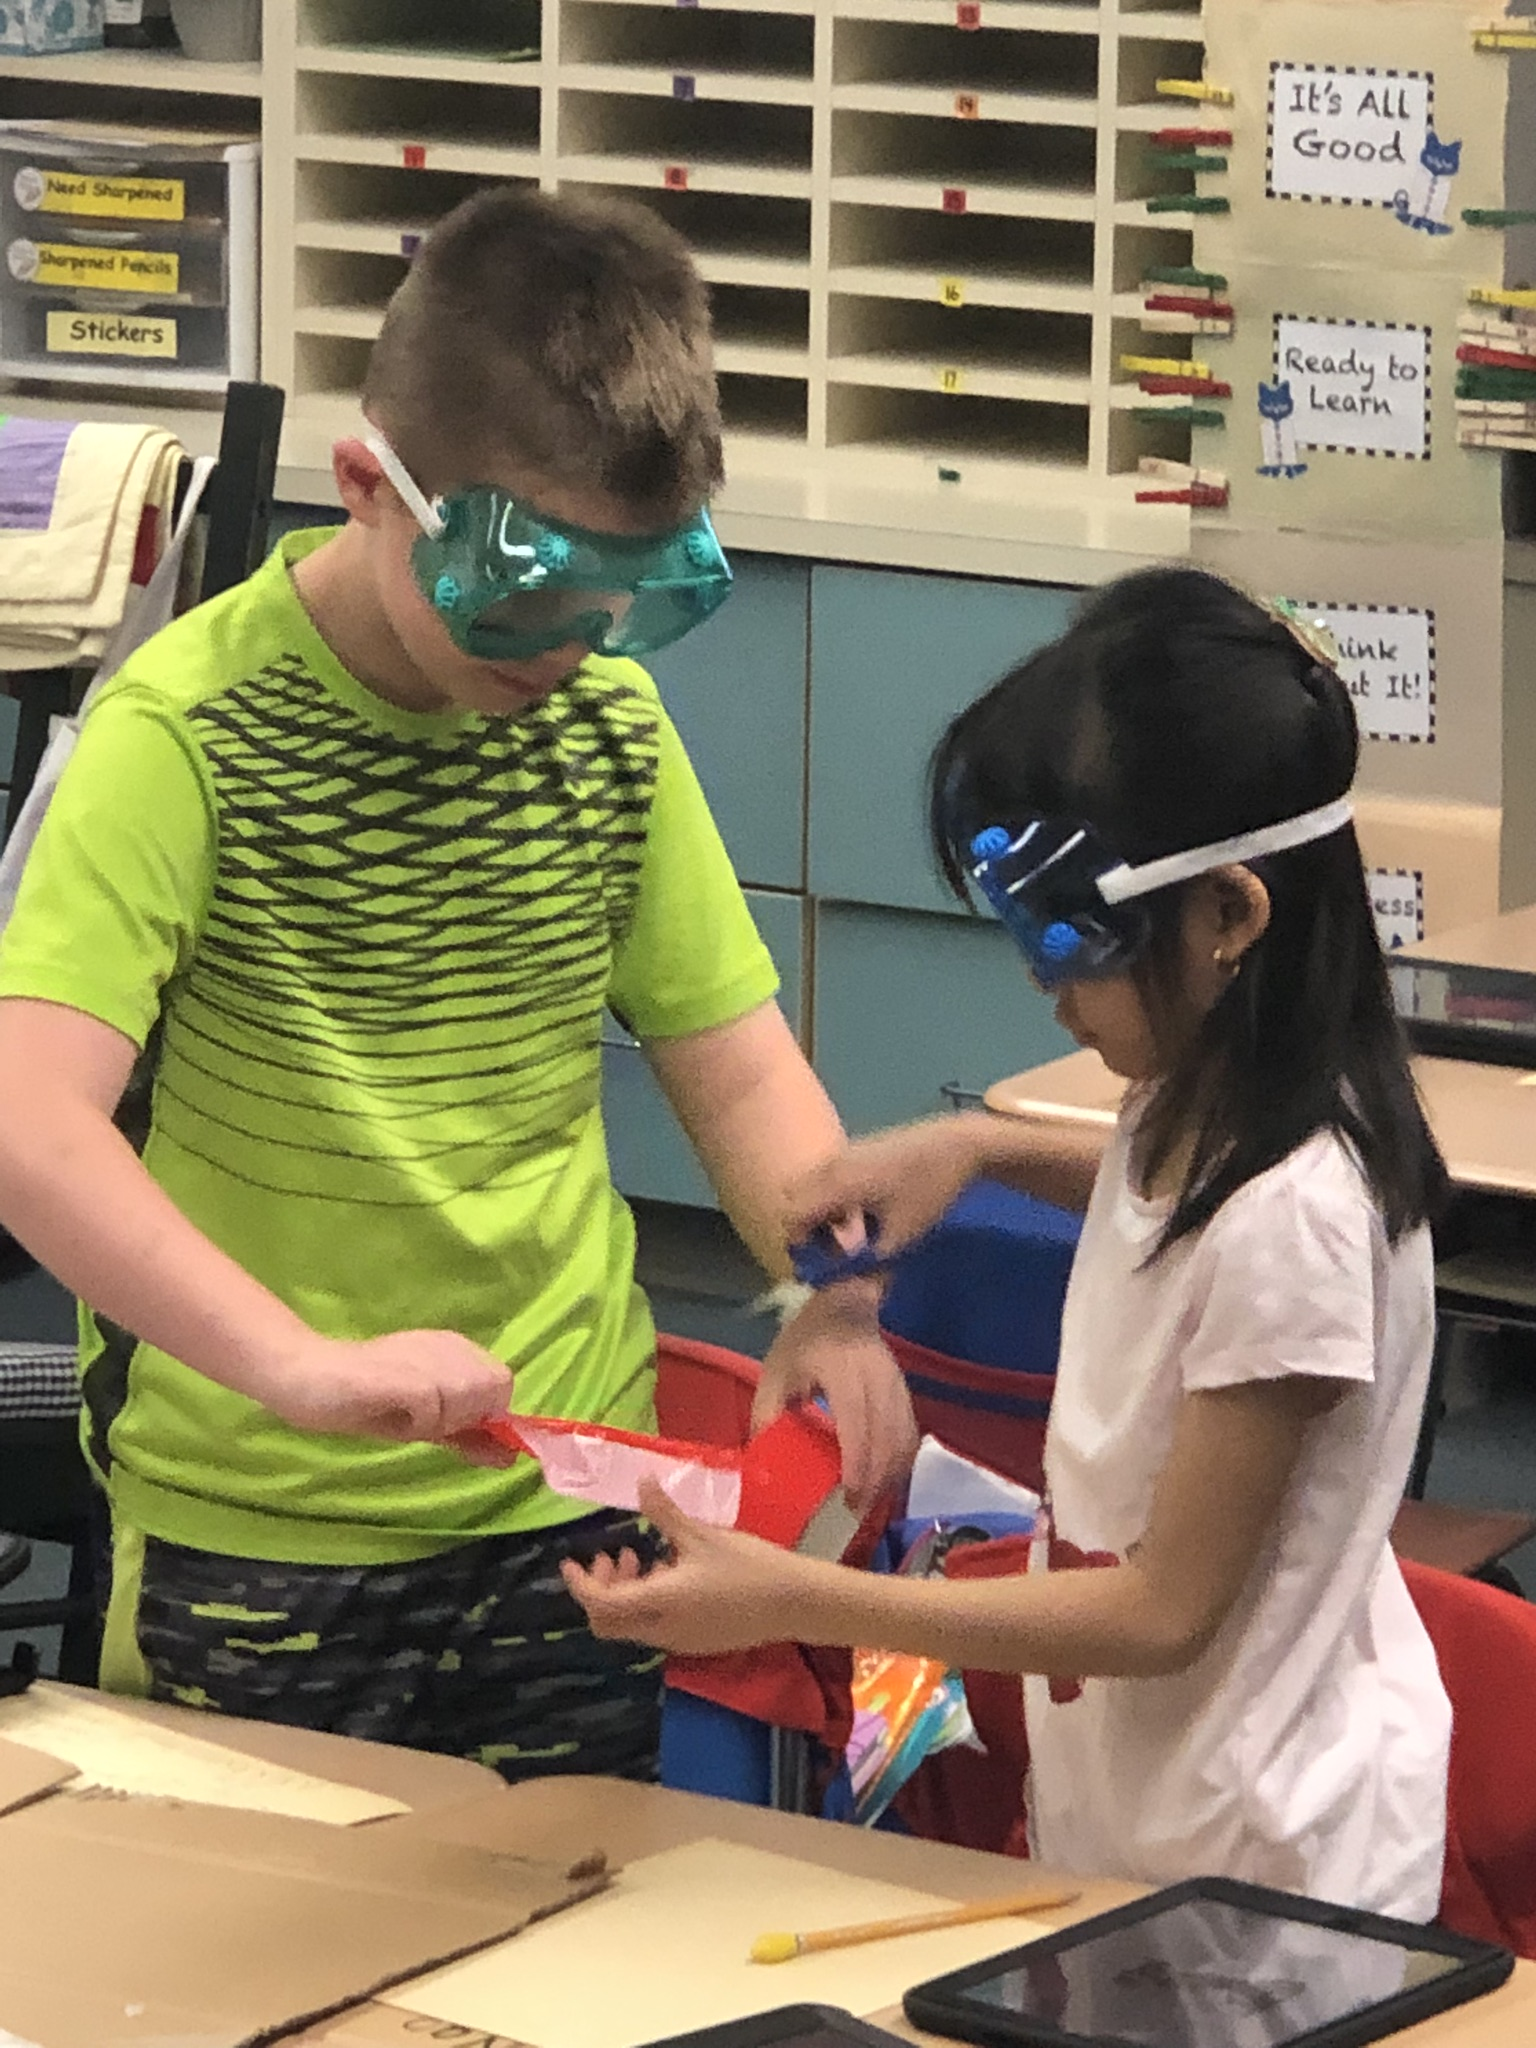 A young male and female student working together on a STEM project.